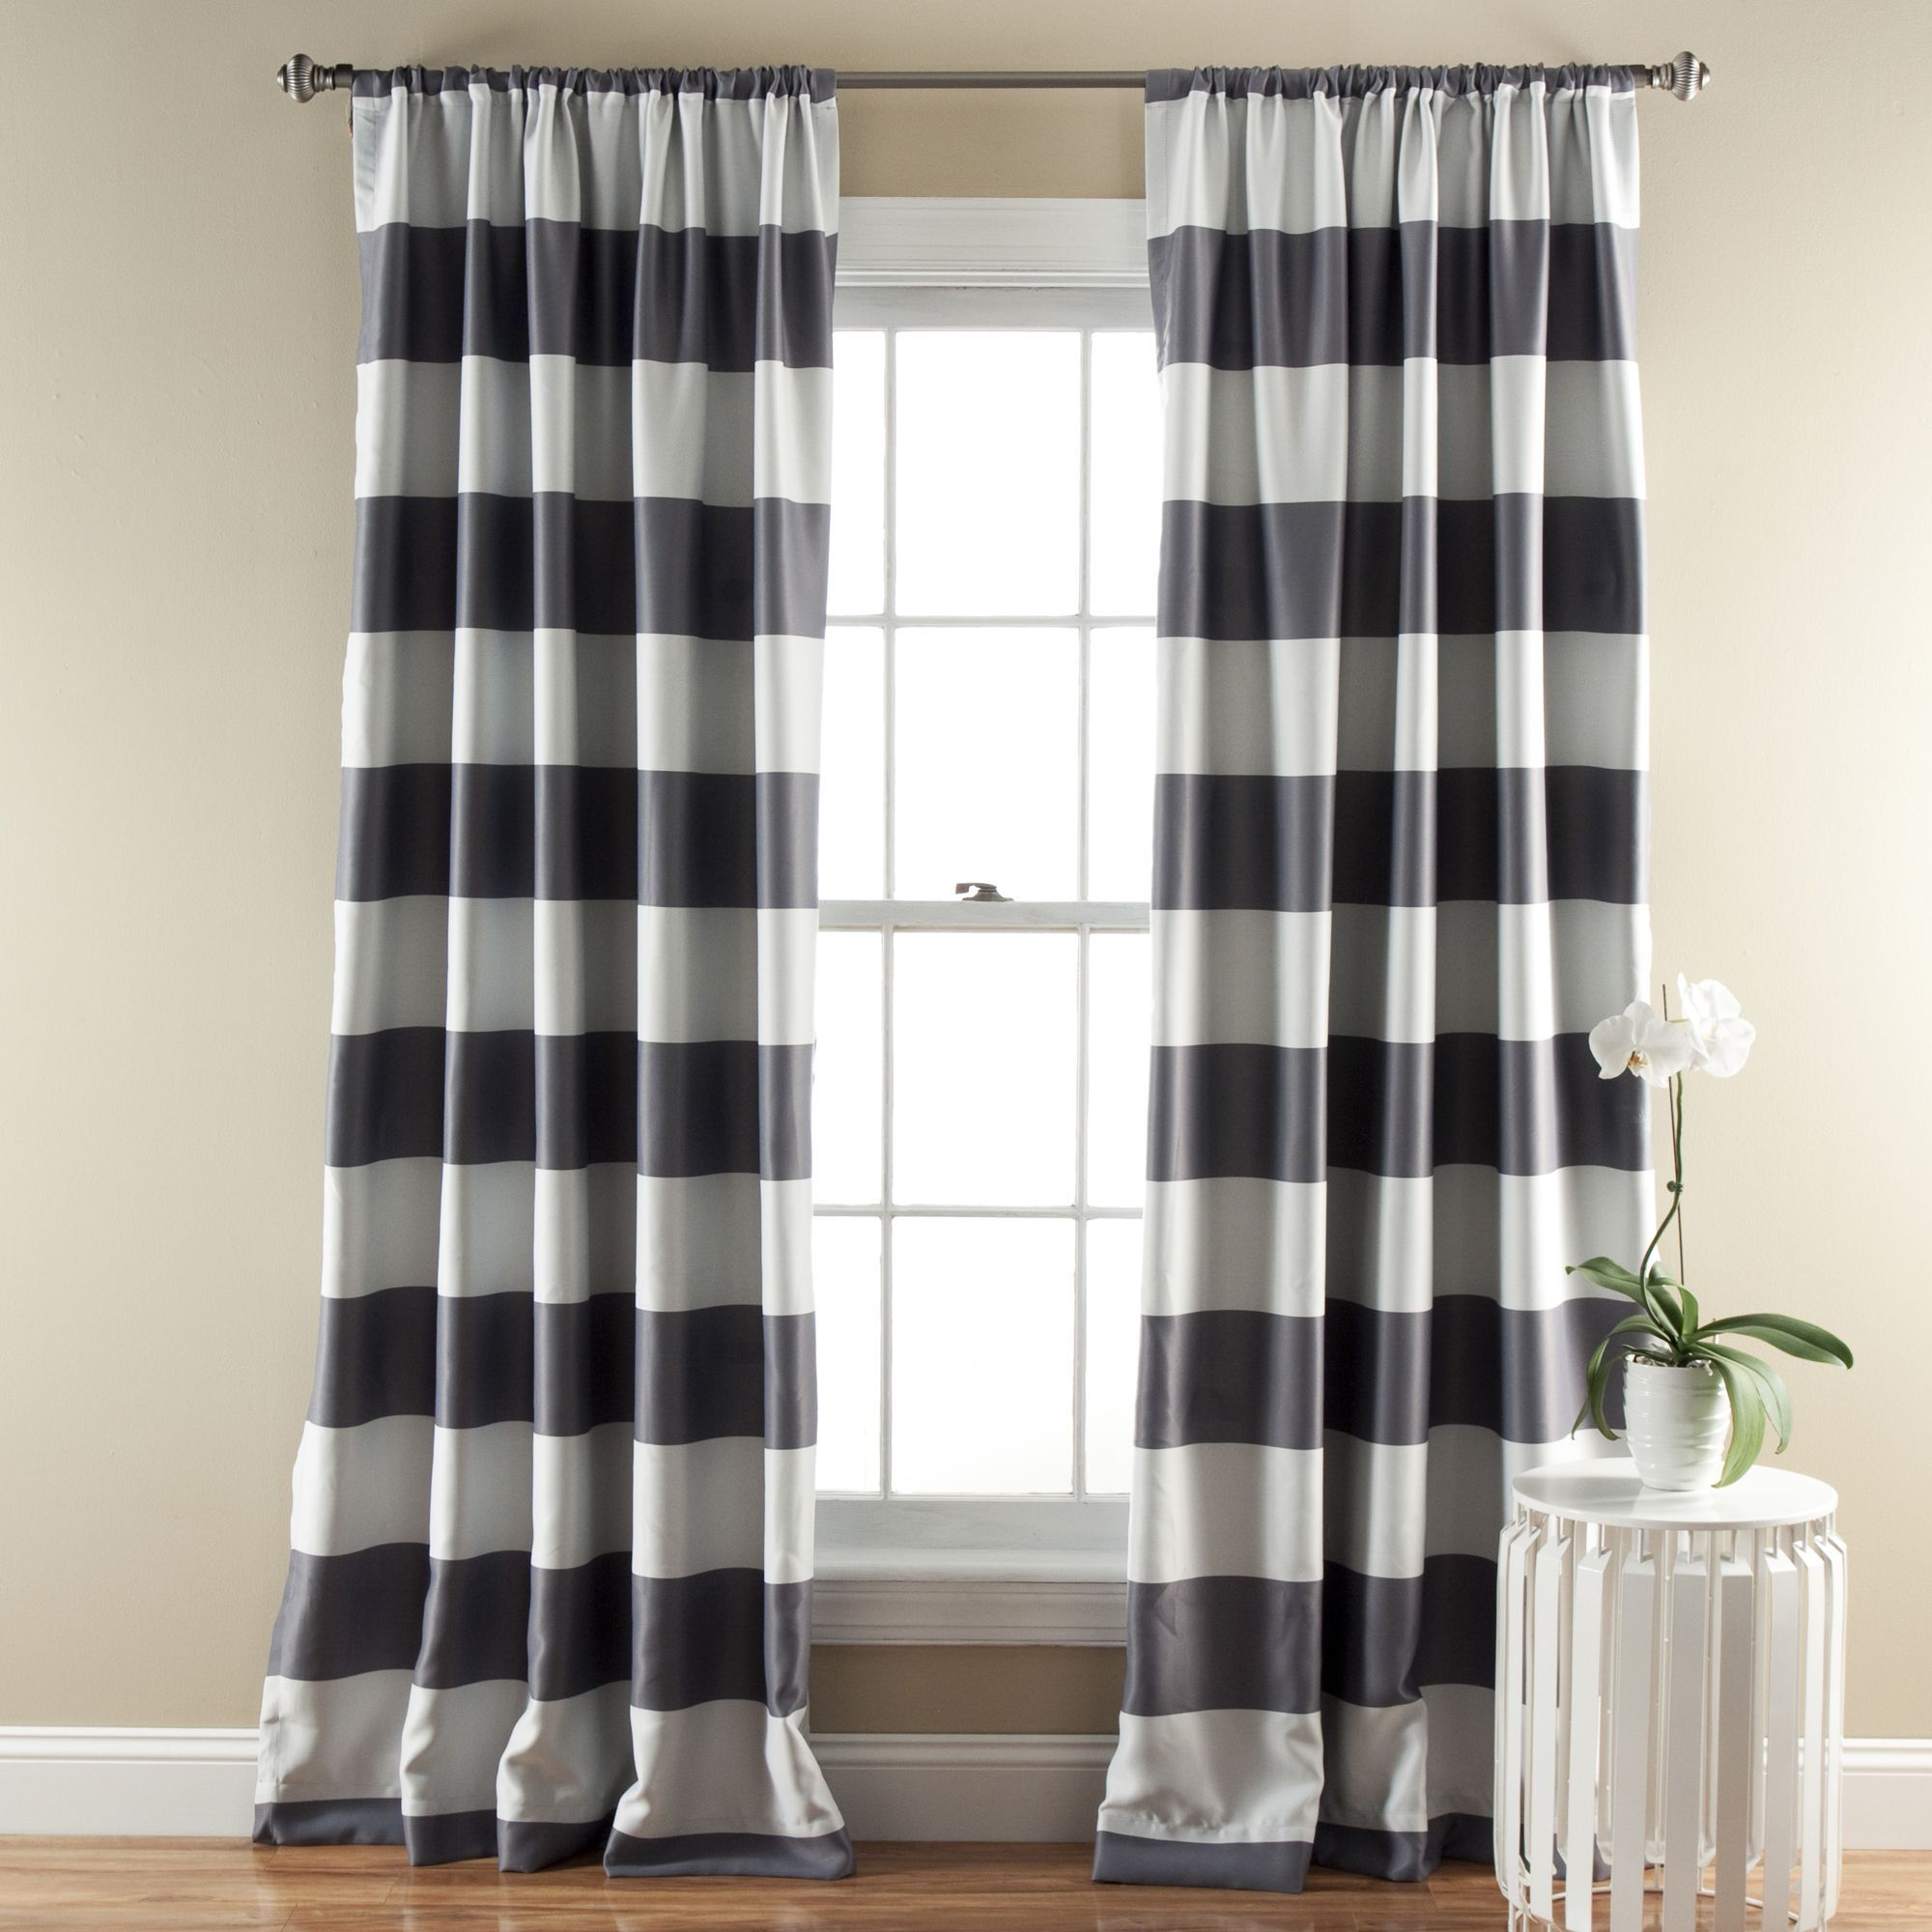 curtain shower nautica for inspiration fascinating astonishing ideas files and curtains stalls trend toddler pics of up stand outlet u boy